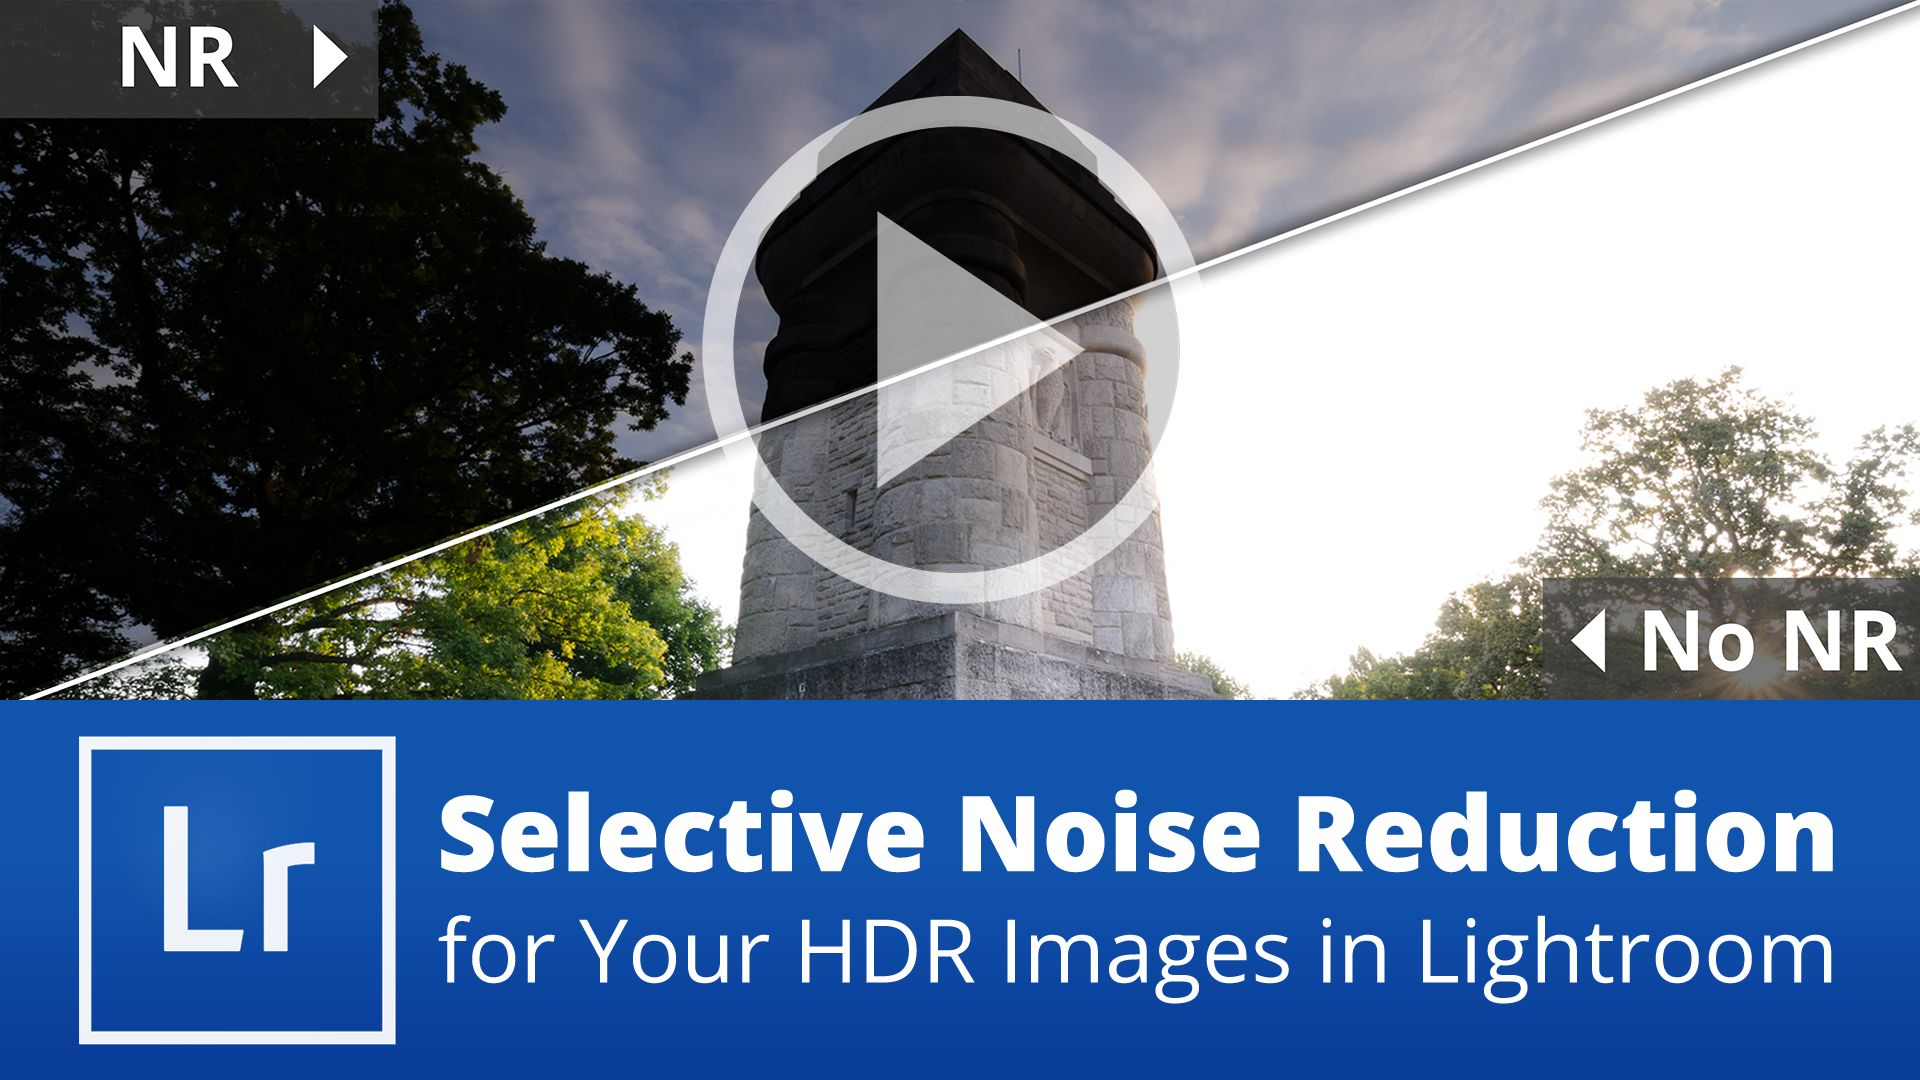 Selective Noise Reduction for Your HDR Images in Lightroom